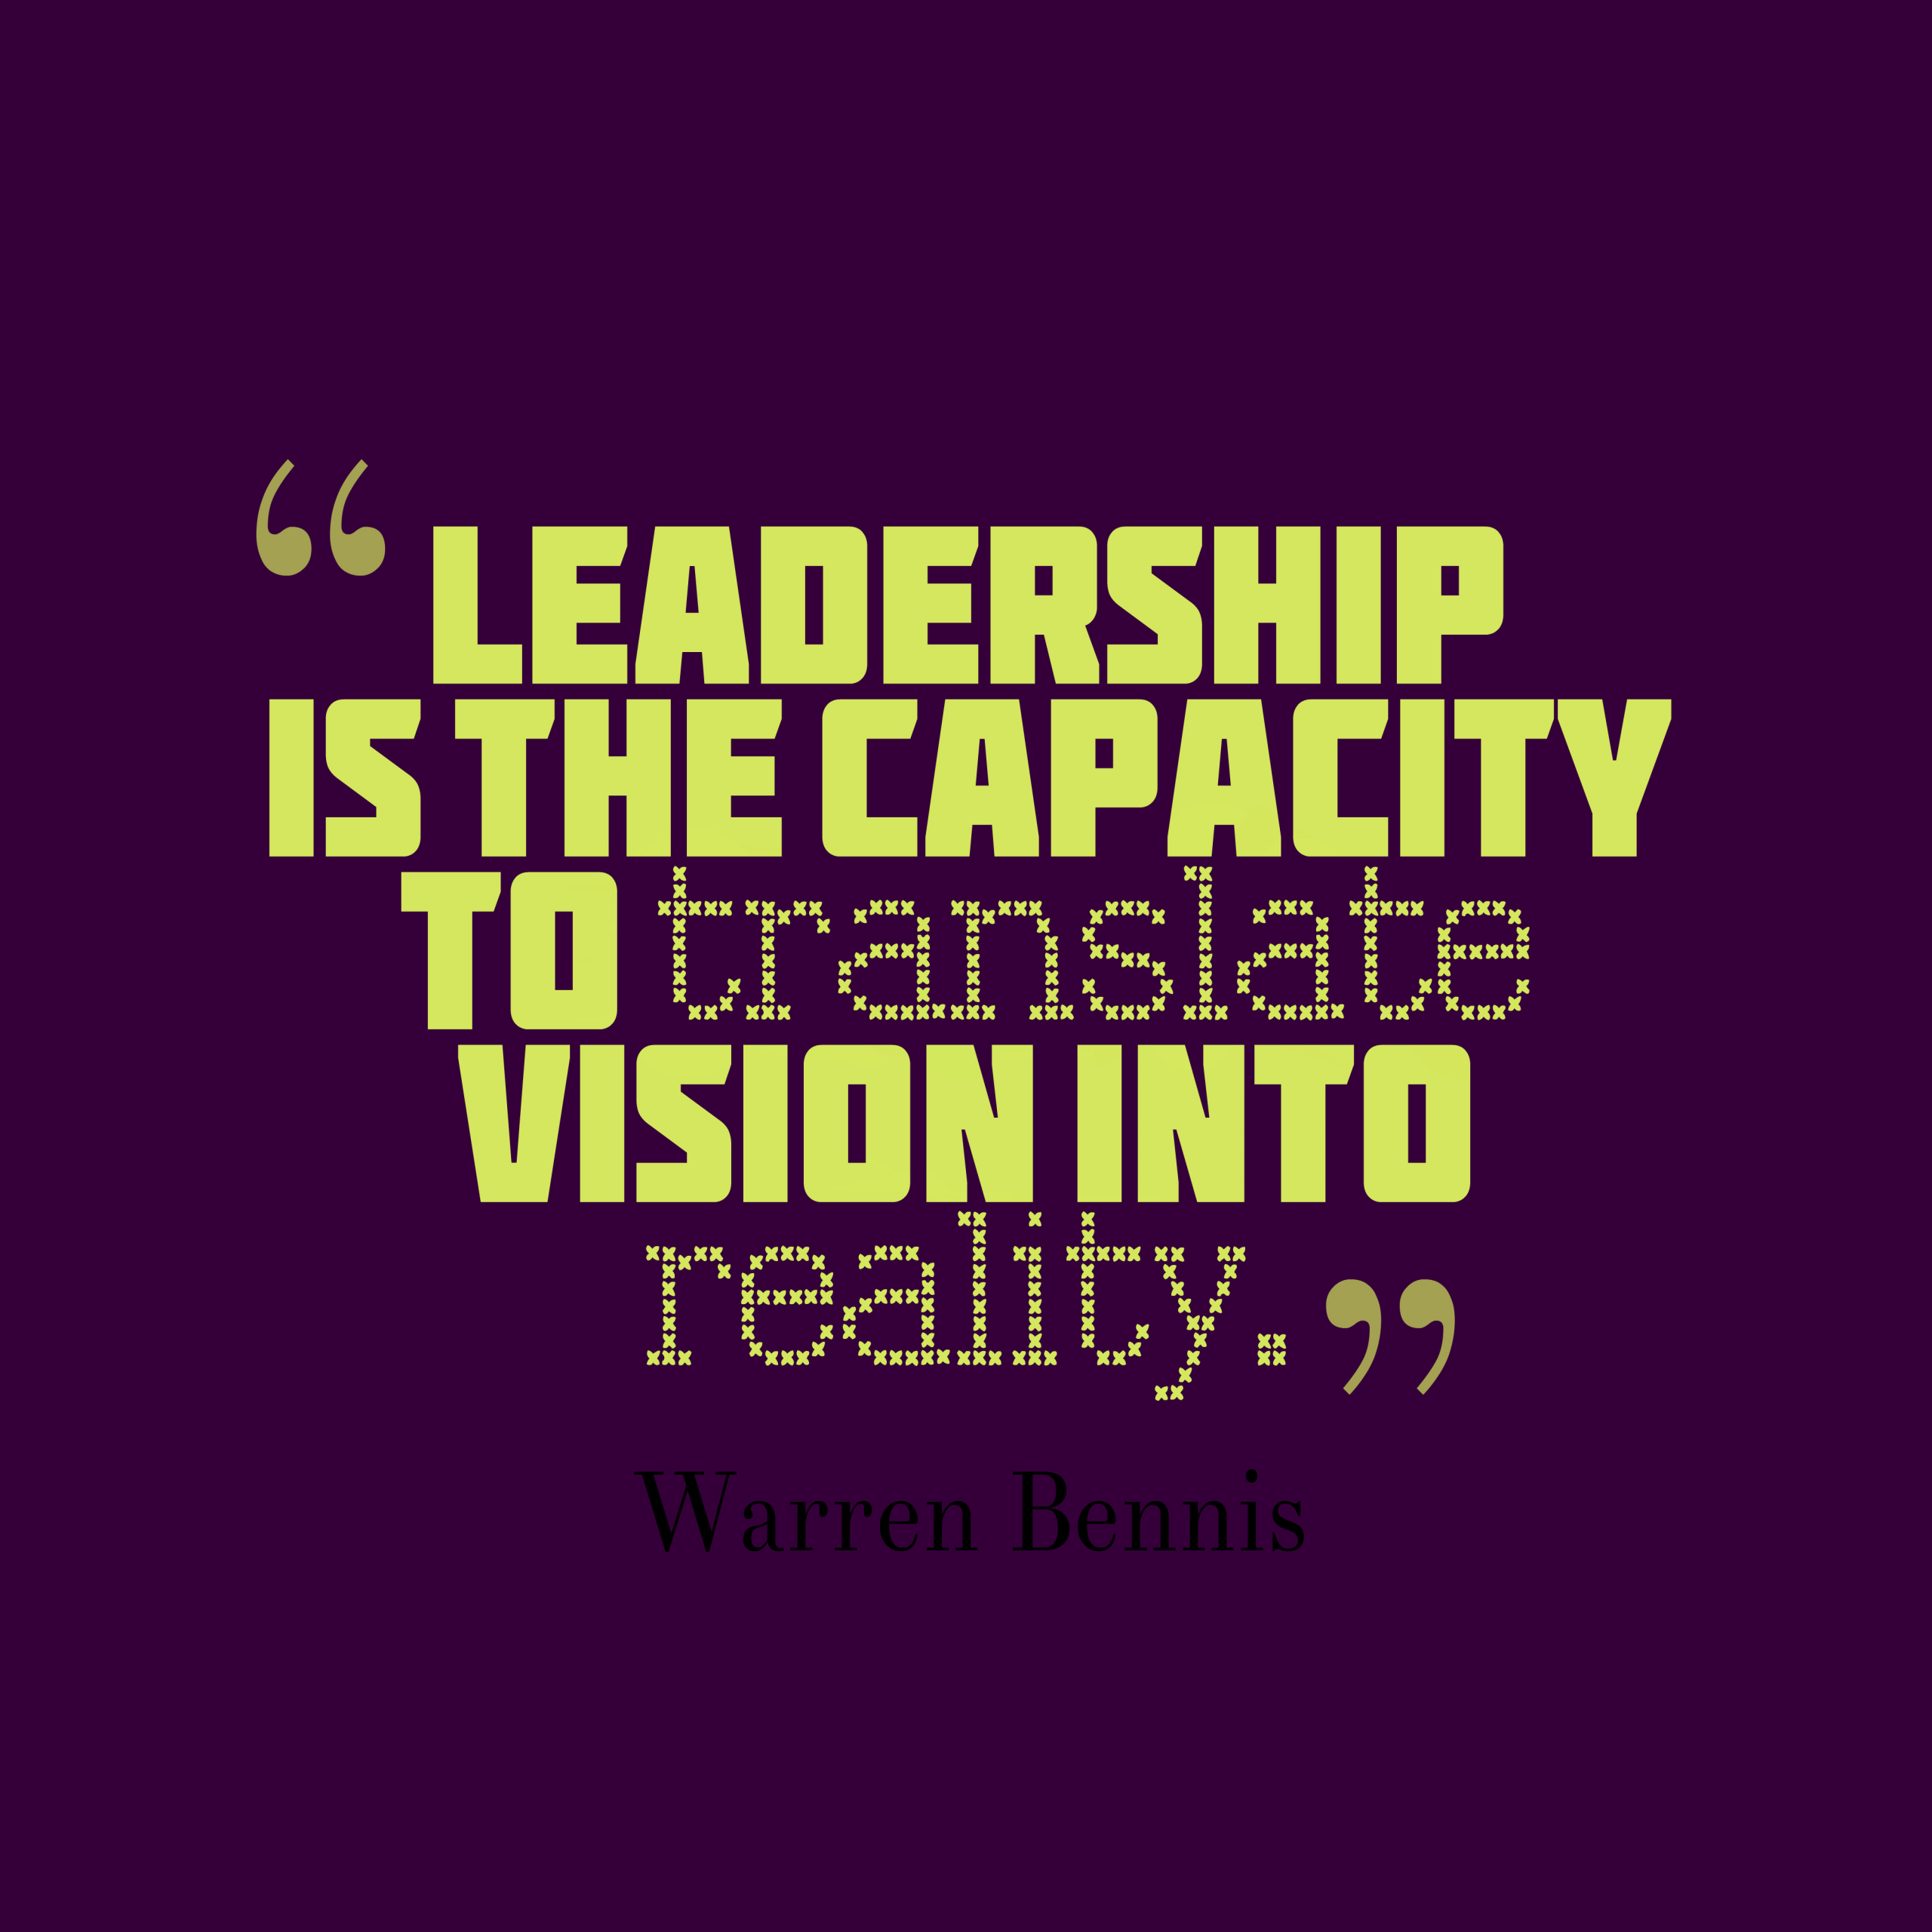 Famous Quotes On Leadership  20 Best Leadership Quotes – WeNeedFun